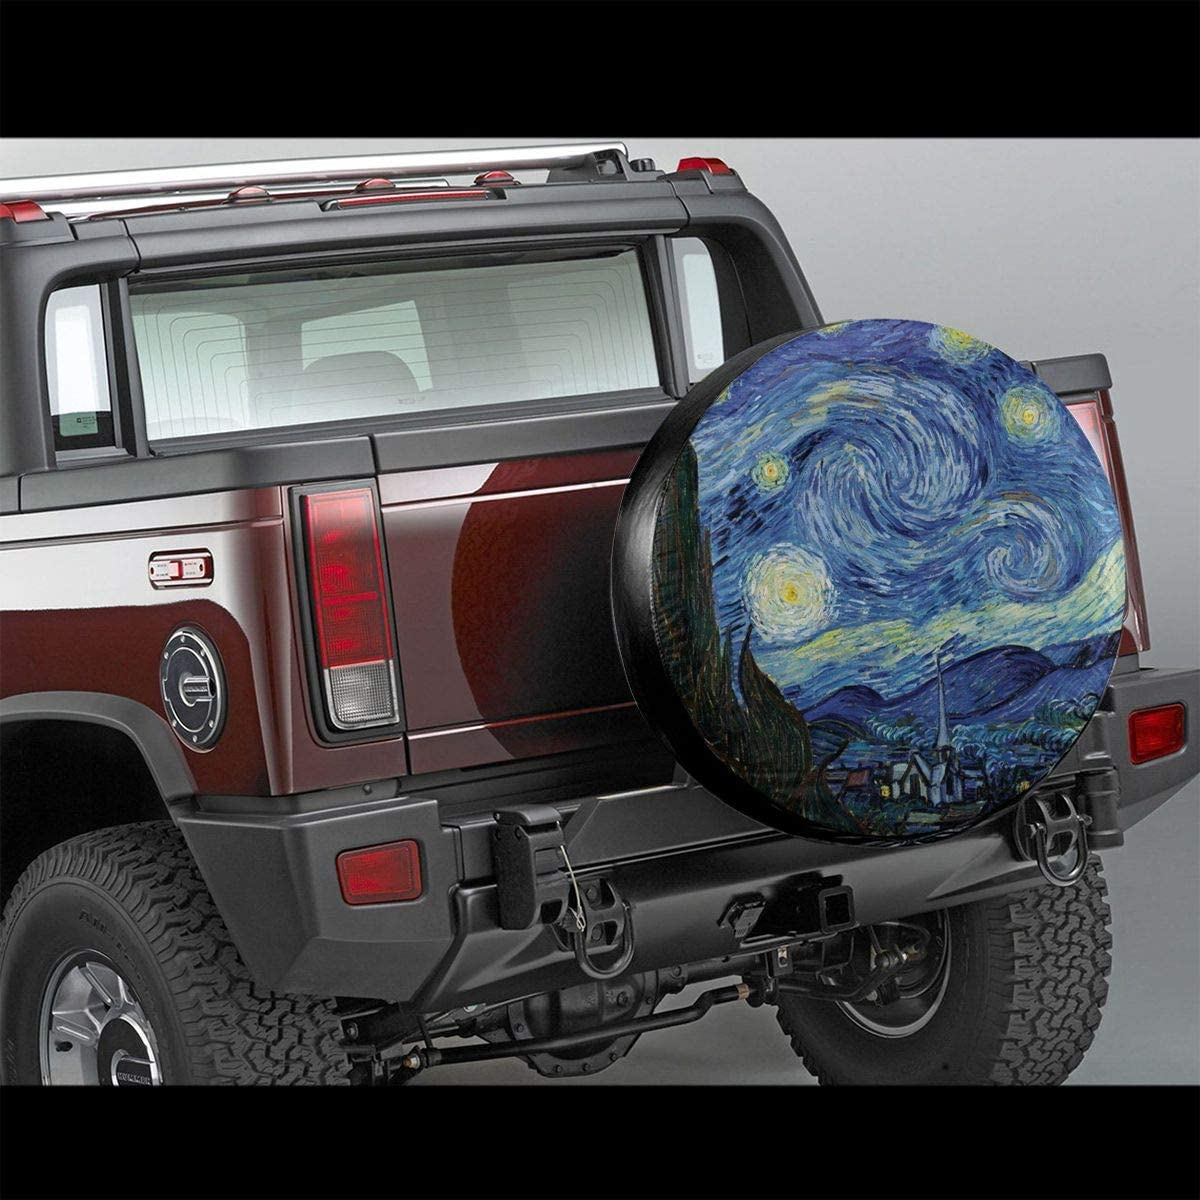 Sherrygeoffrey Star Trek Space The Final Frontier Beautiful and Practical Tire Cover Essential for Daily Car Protection 15 Inch